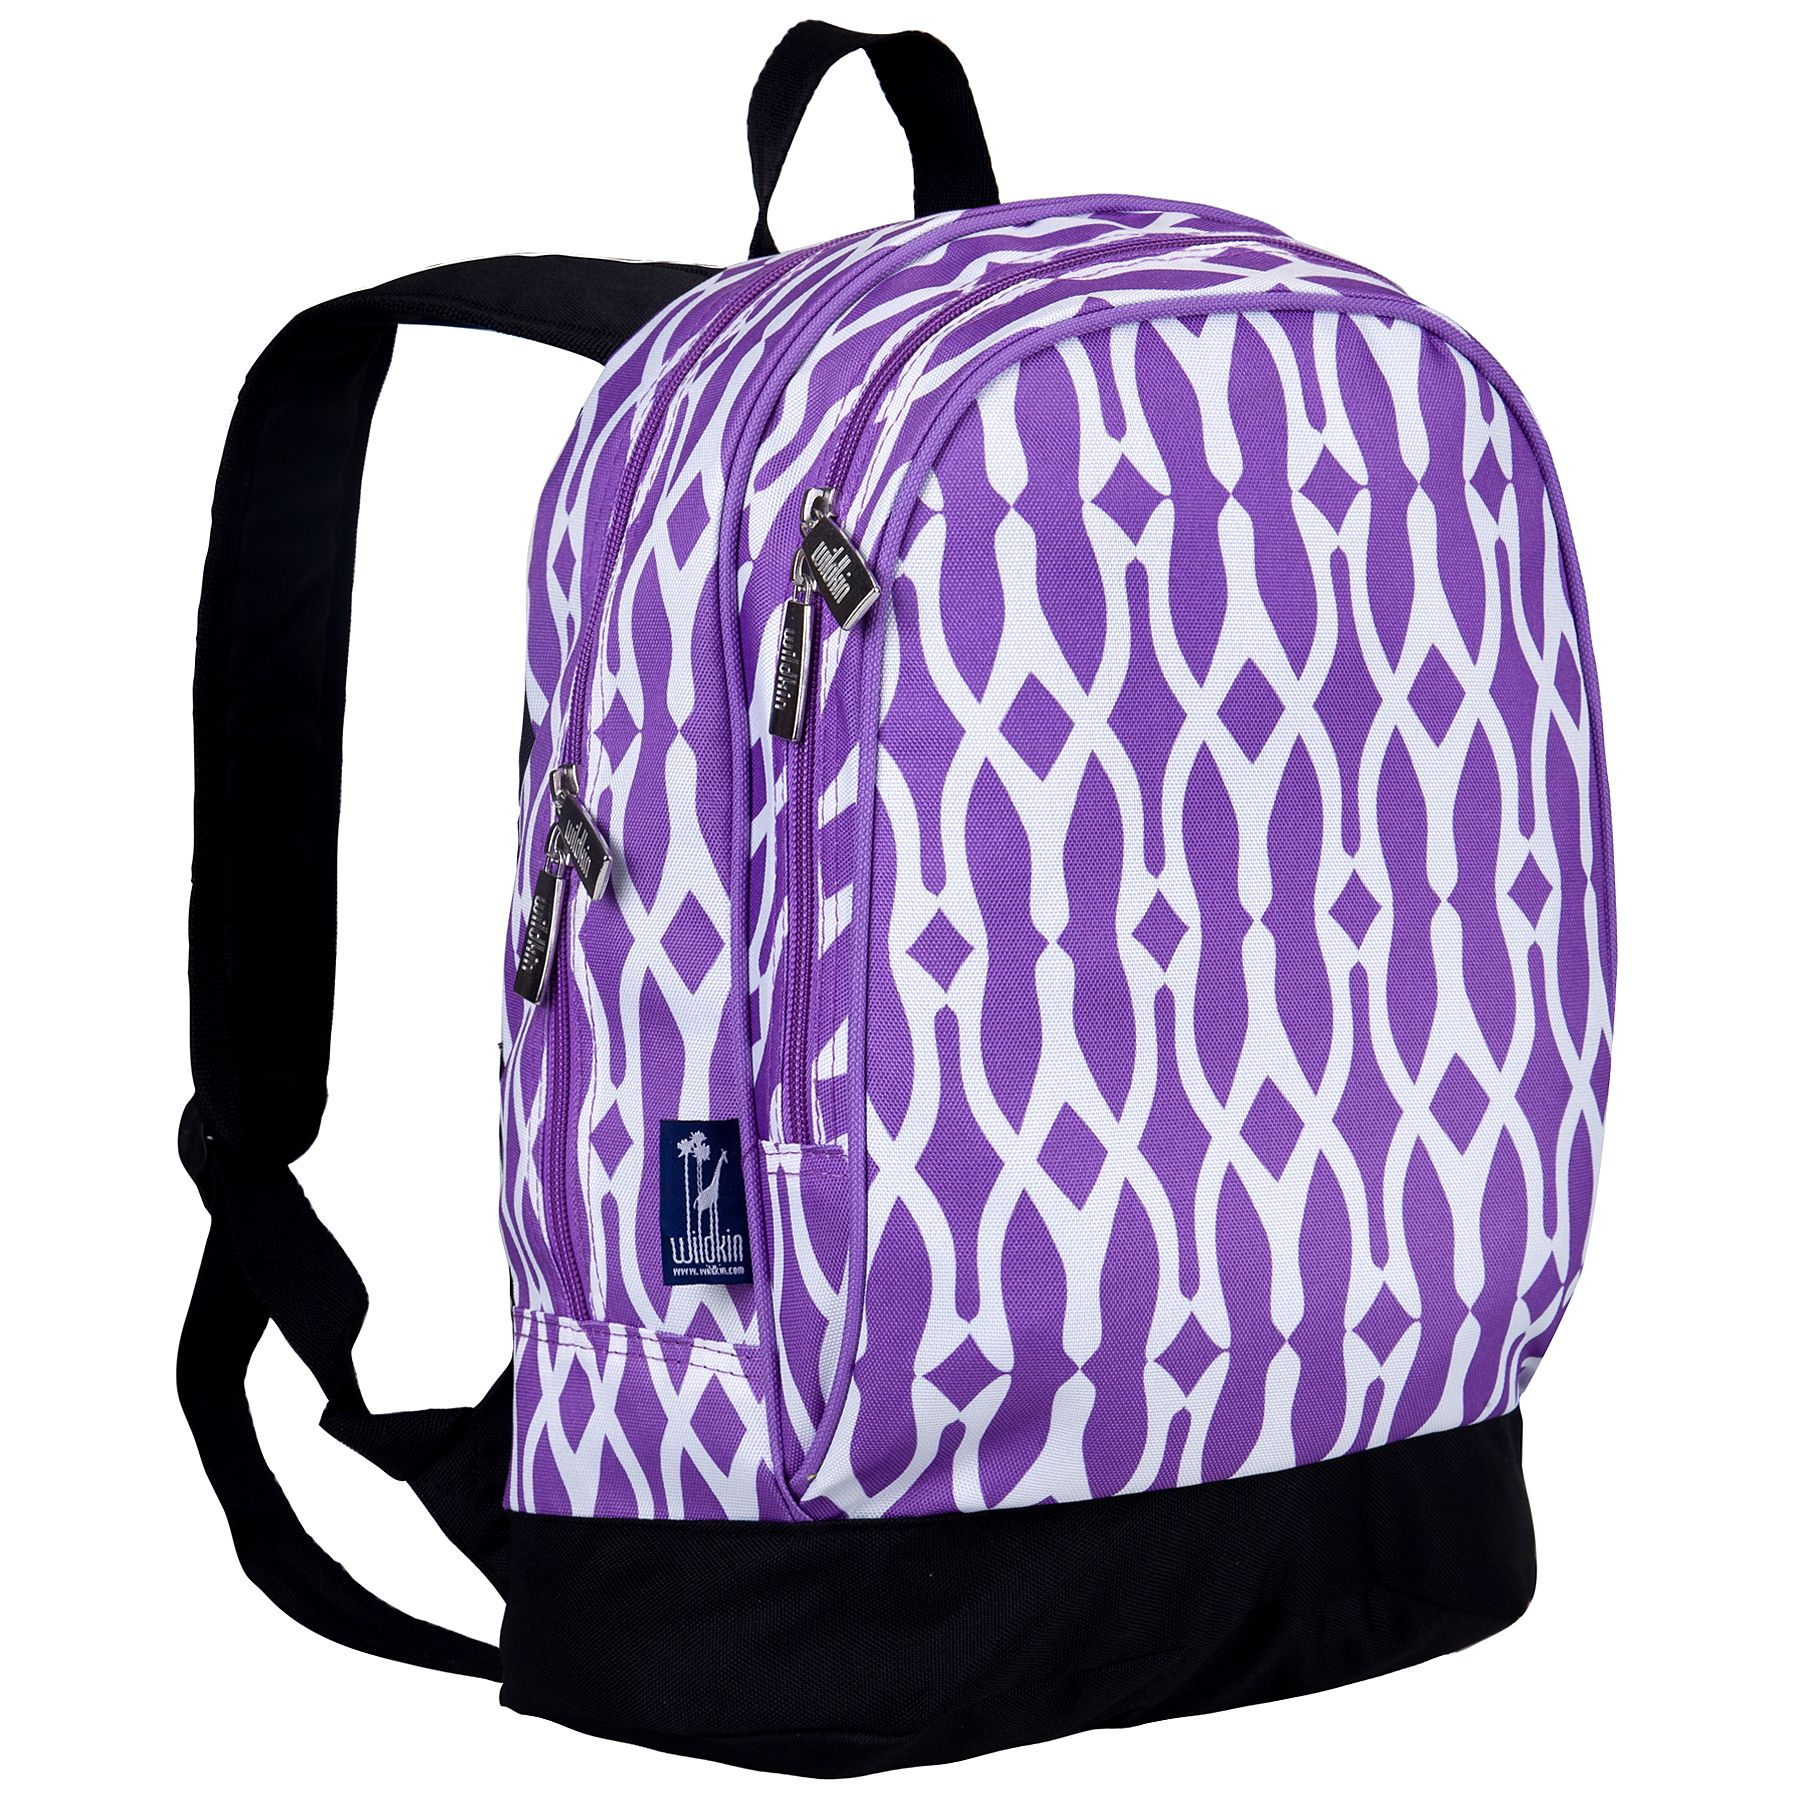 344698d1afba Most Durable Backpacks For Elementary School- Fenix Toulouse Handball